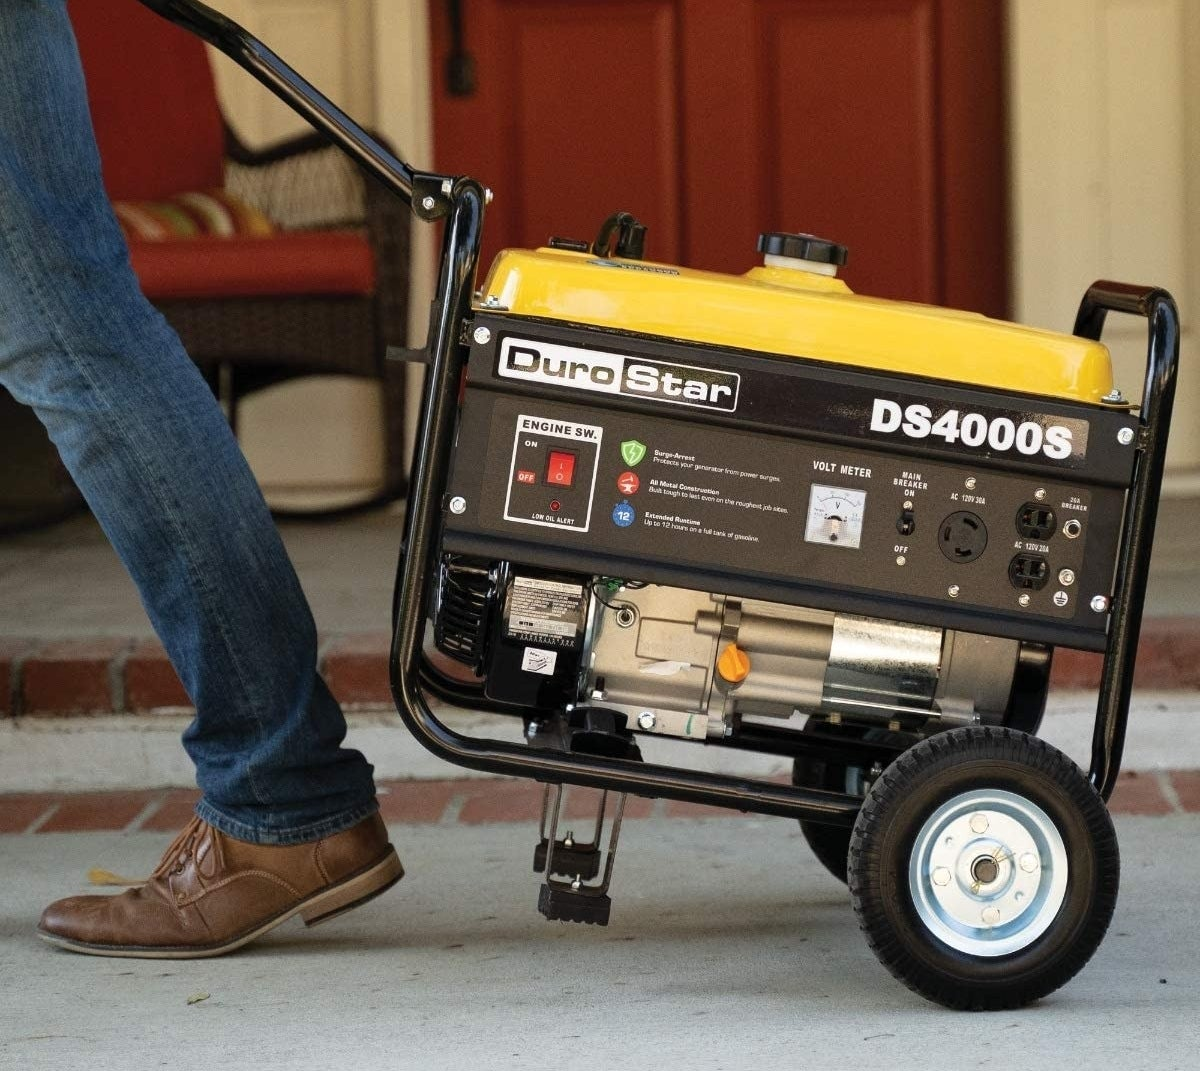 A black and yellow portable generator being wheeled by an individual wearing blue jeans and brown shoes